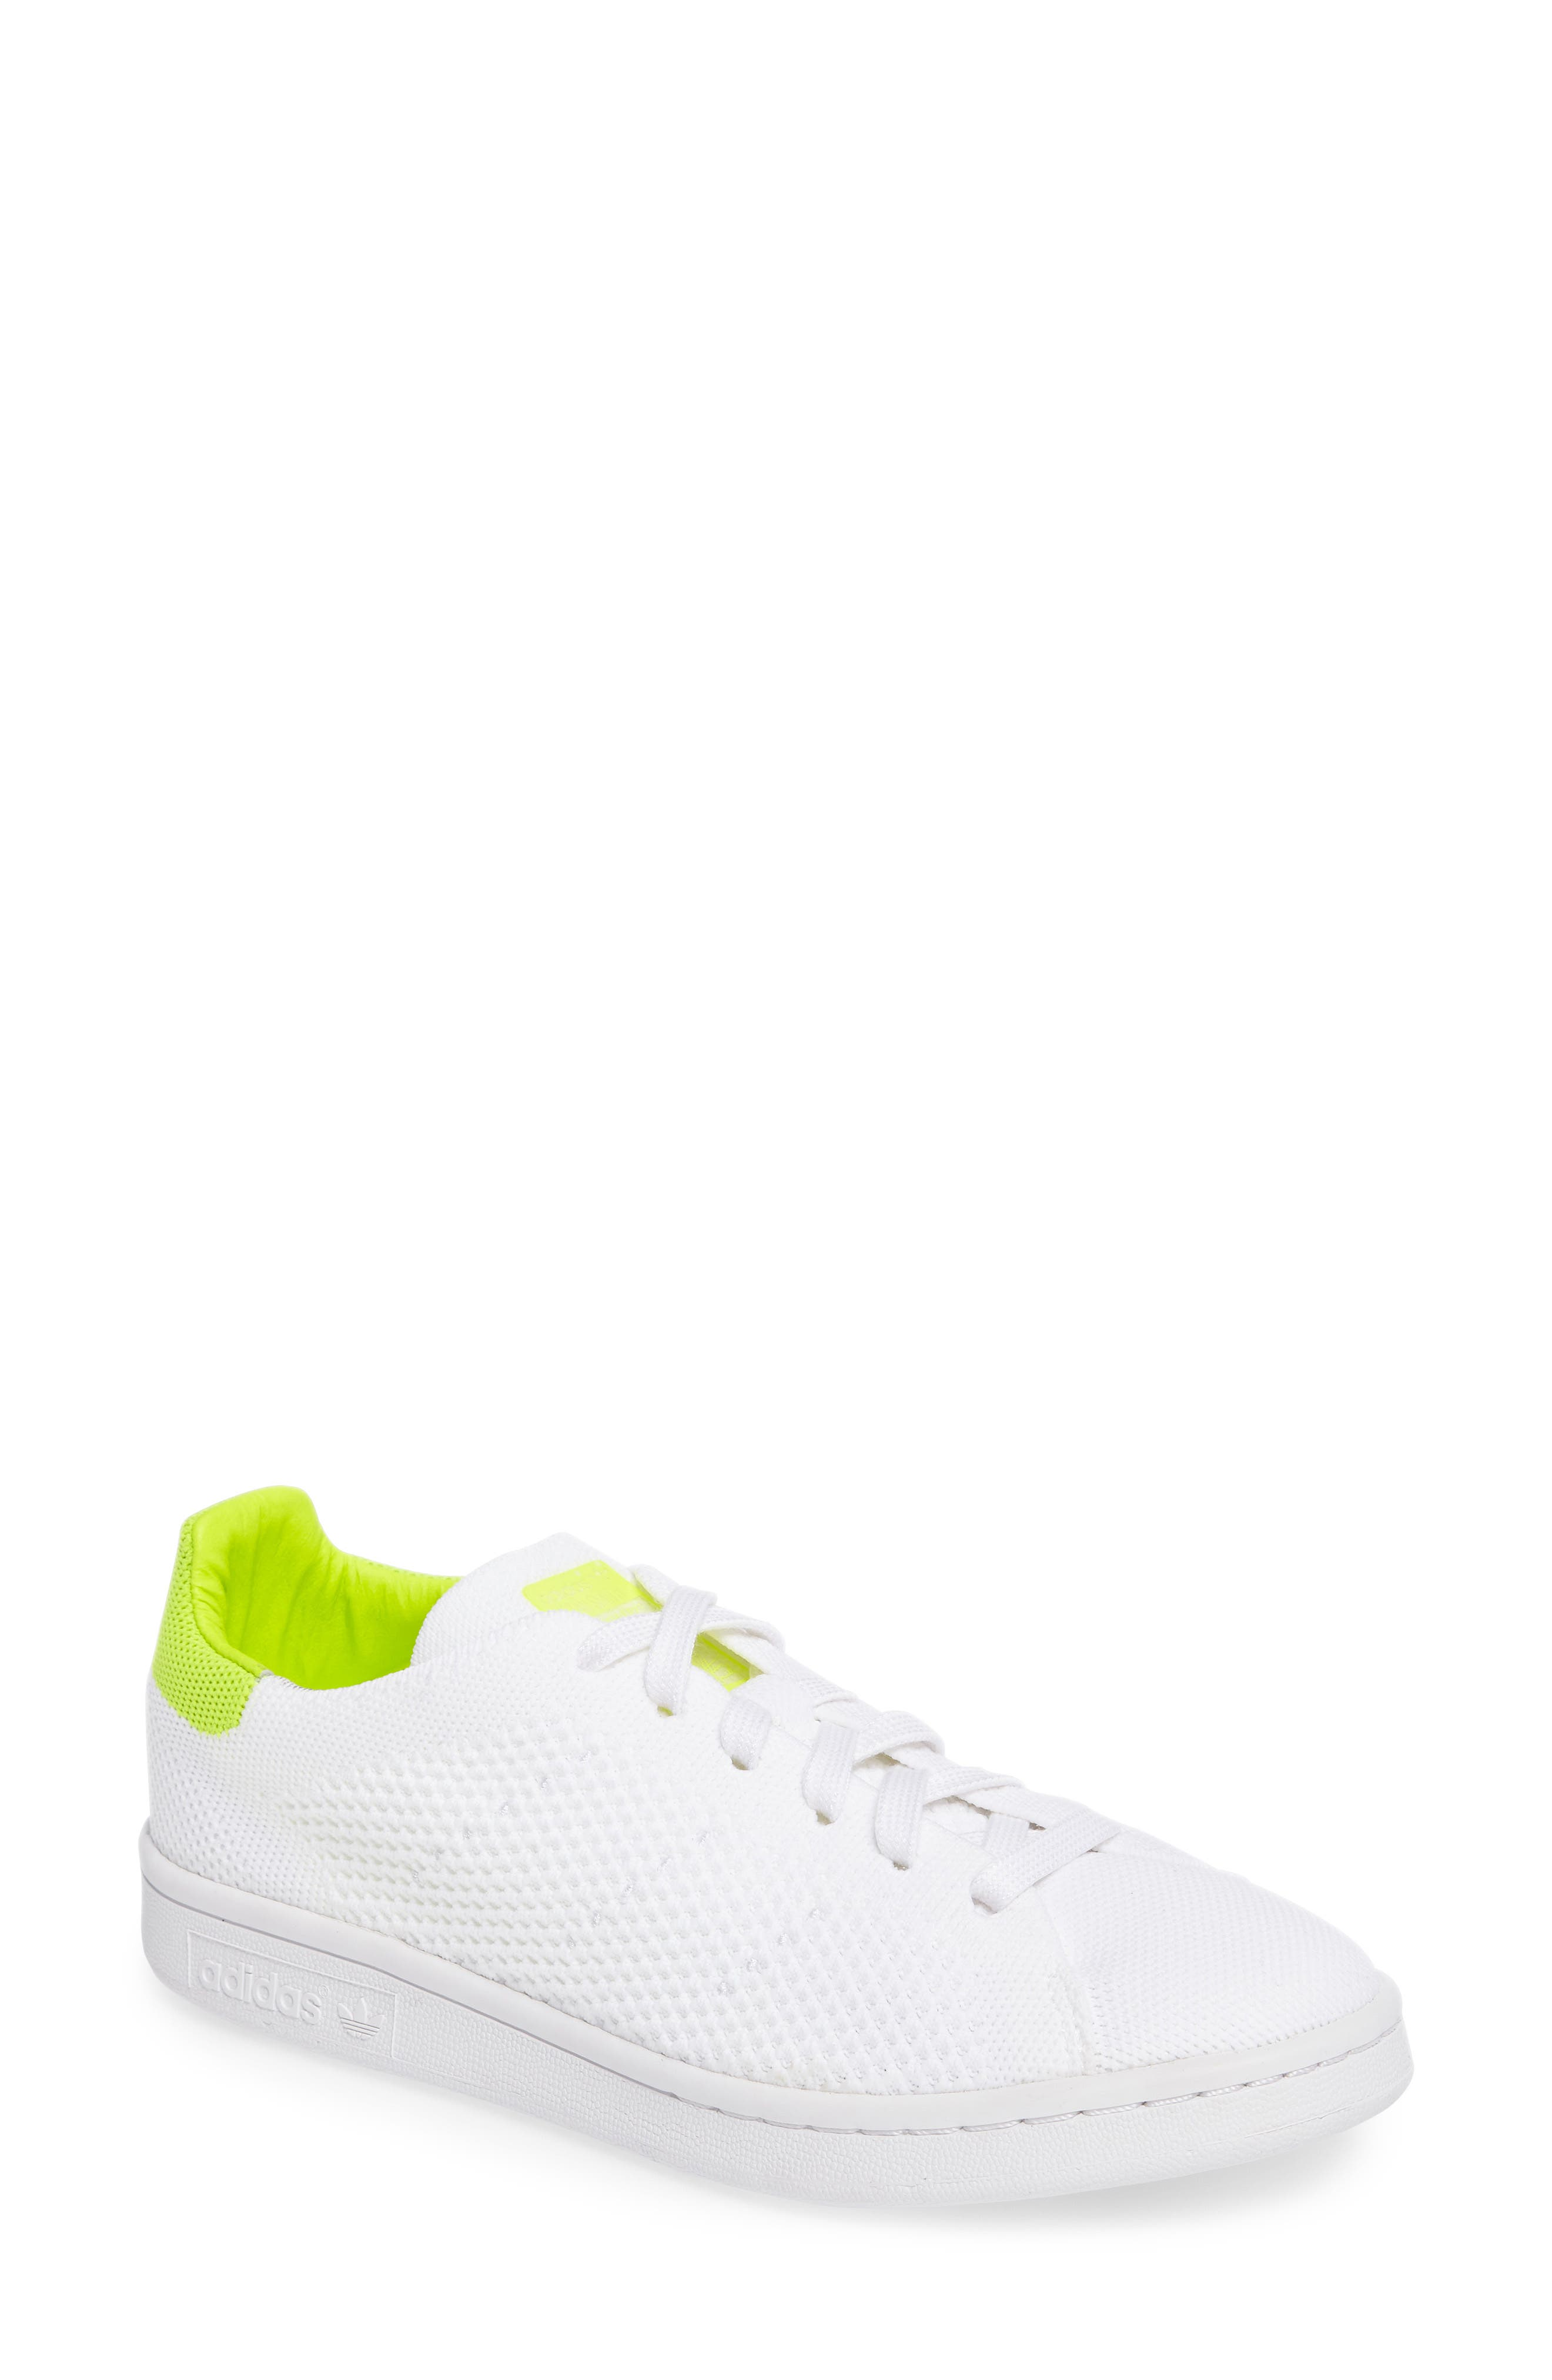 Main Image - adidas Stan Smith - Primeknit Sneaker (Women)